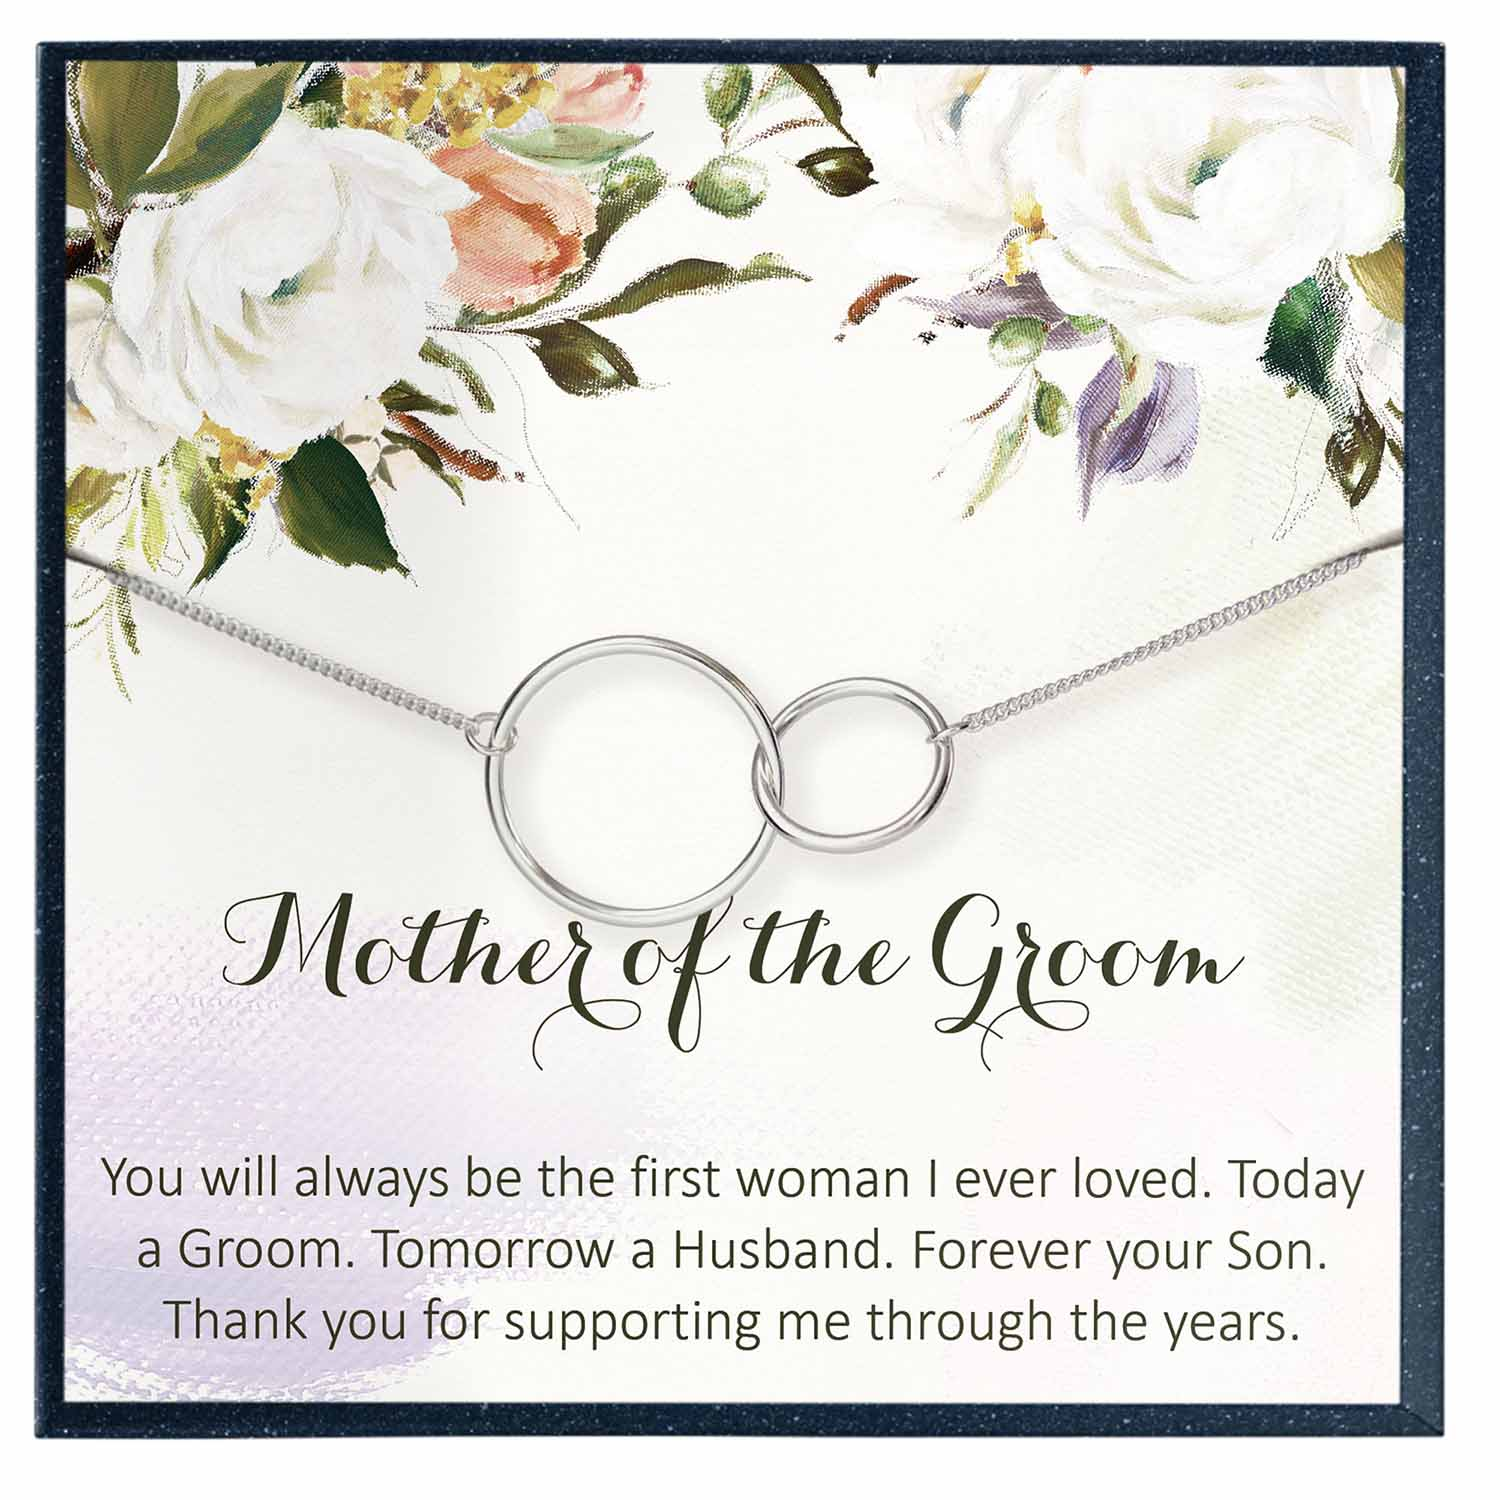 Mother of the Groom Gift from Groom, Mother of the Groom Gift from Son